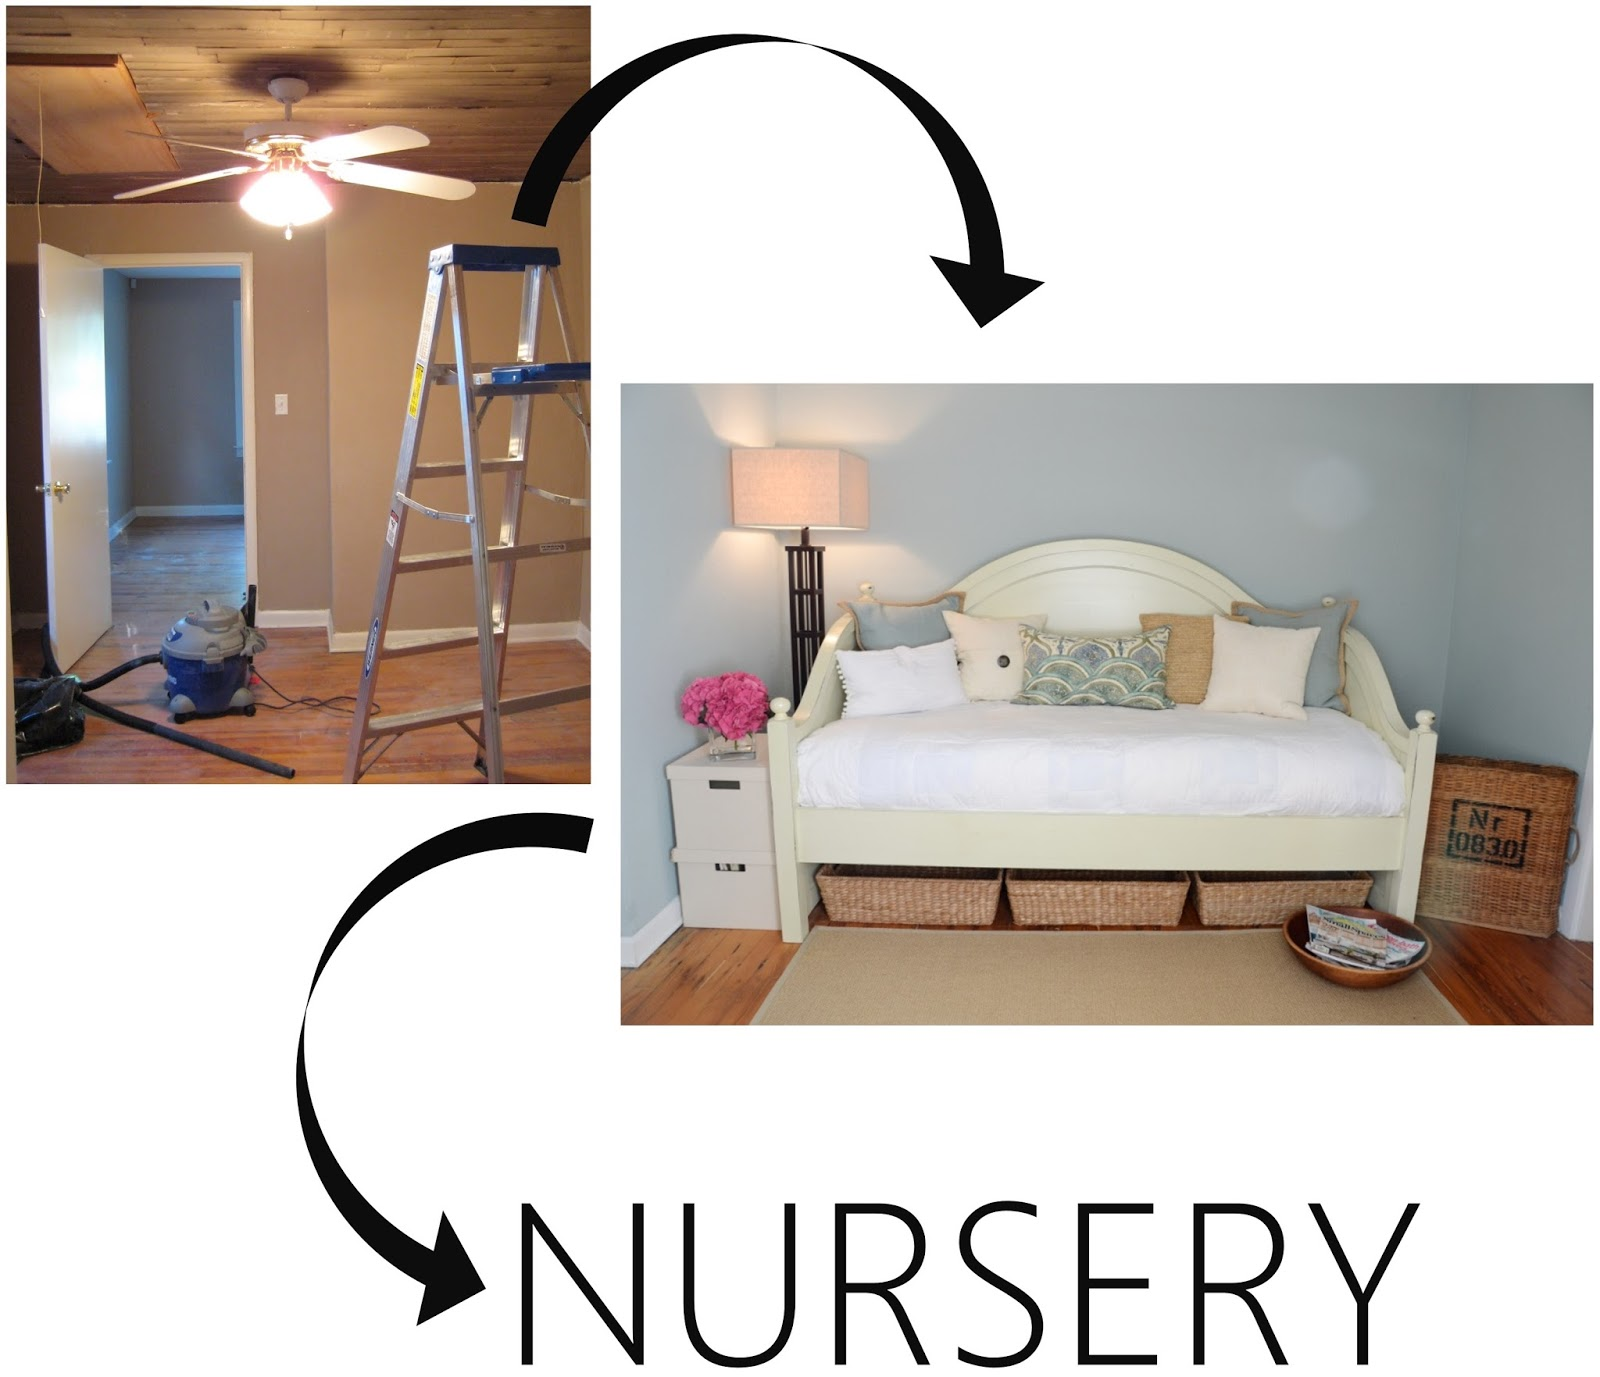 Nursery+Before.jpg